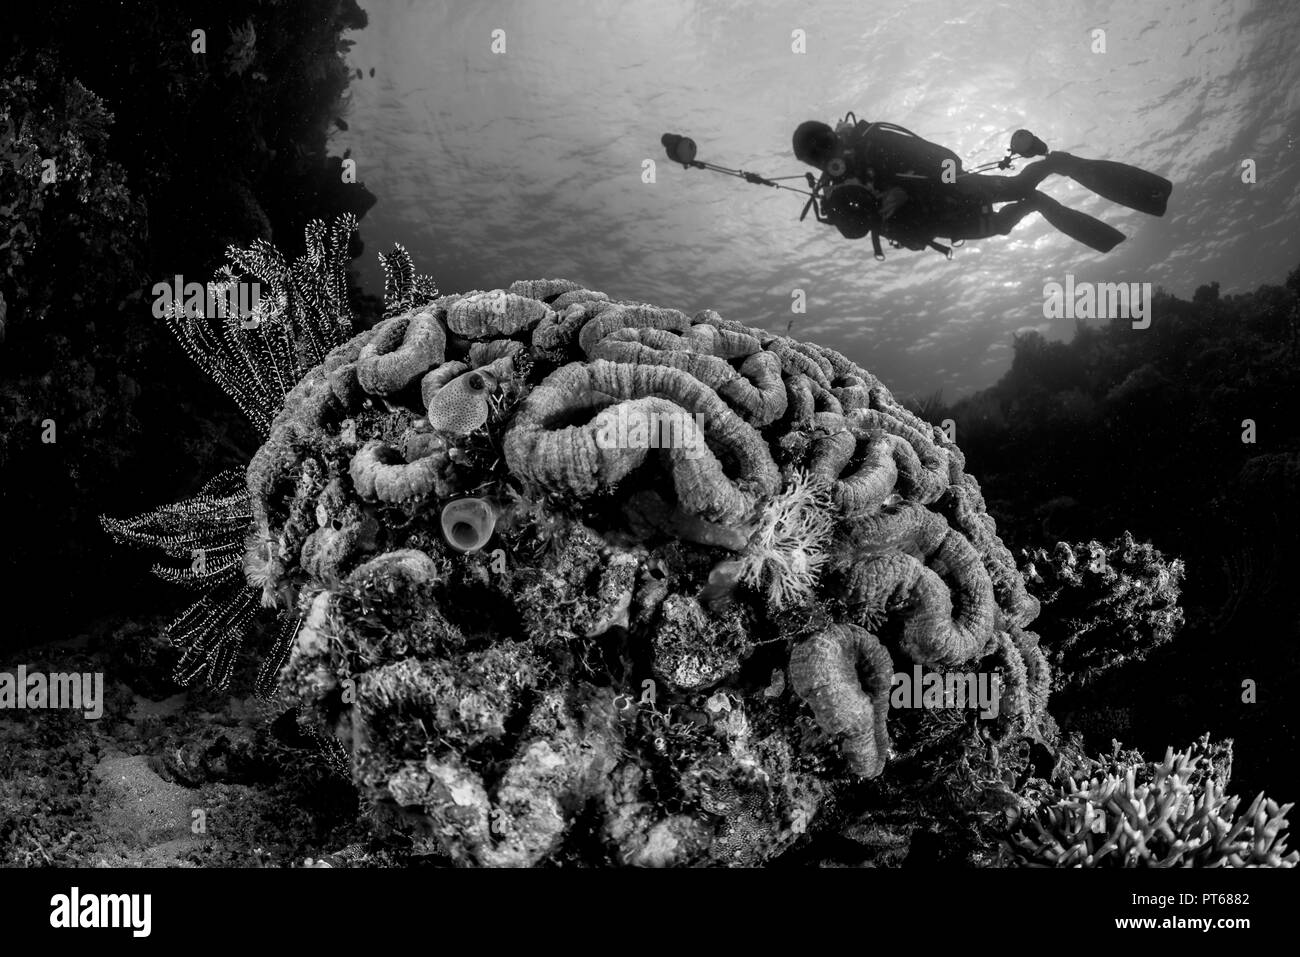 reef coral formation with diver - Stock Image